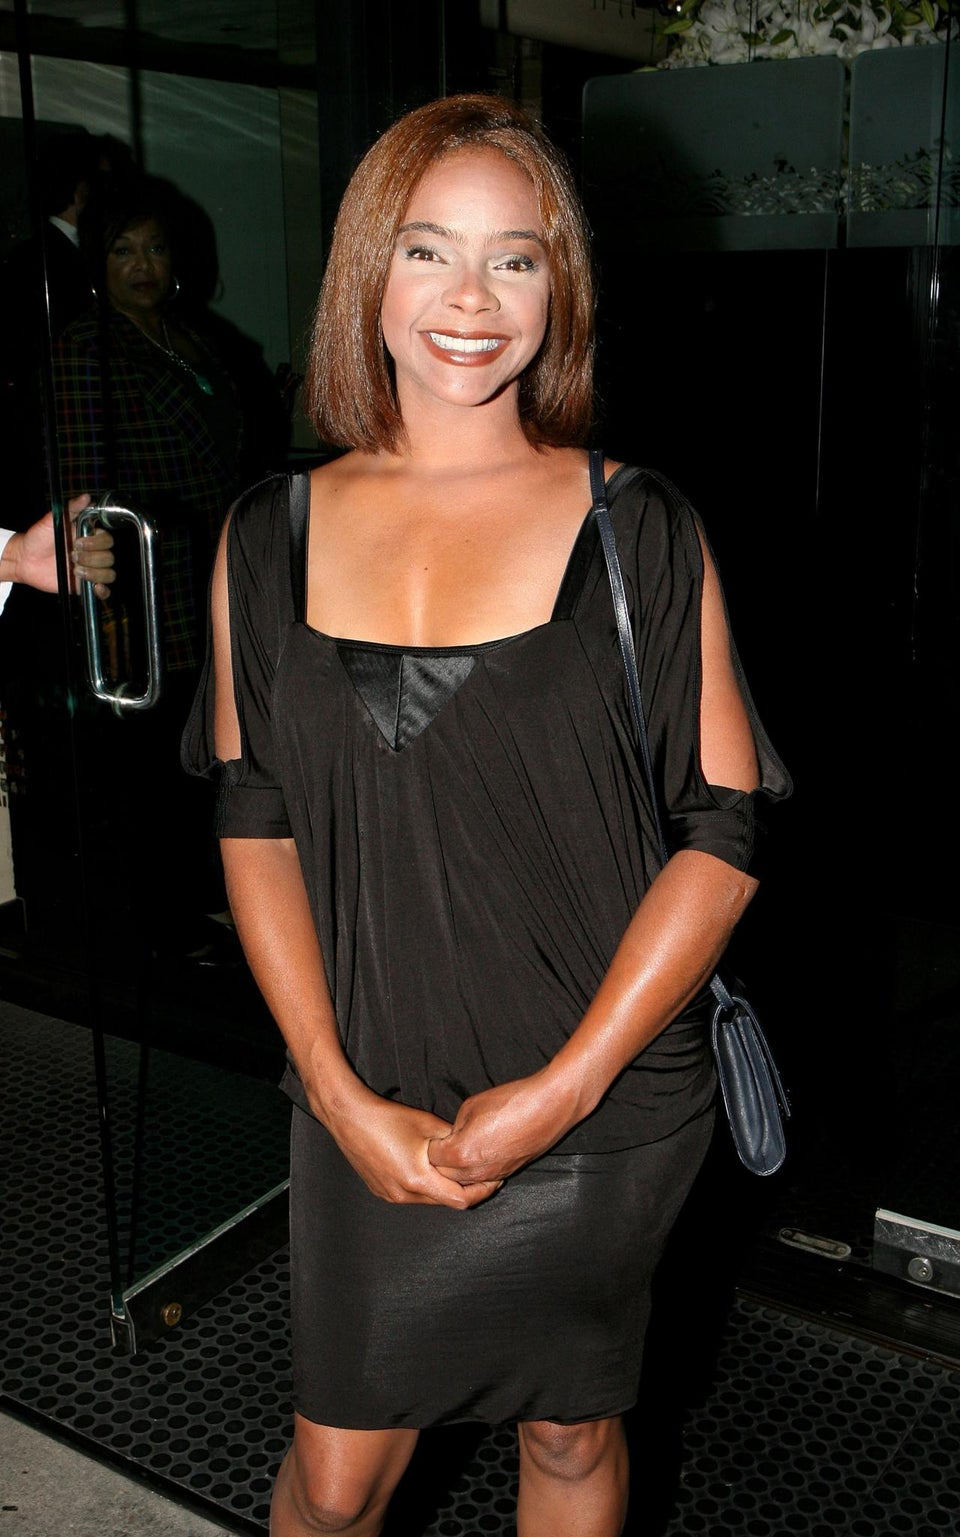 Coffee Talk: Lark Voorhies' Mom Says the 'Saved By The Bell' Star is Bipolar